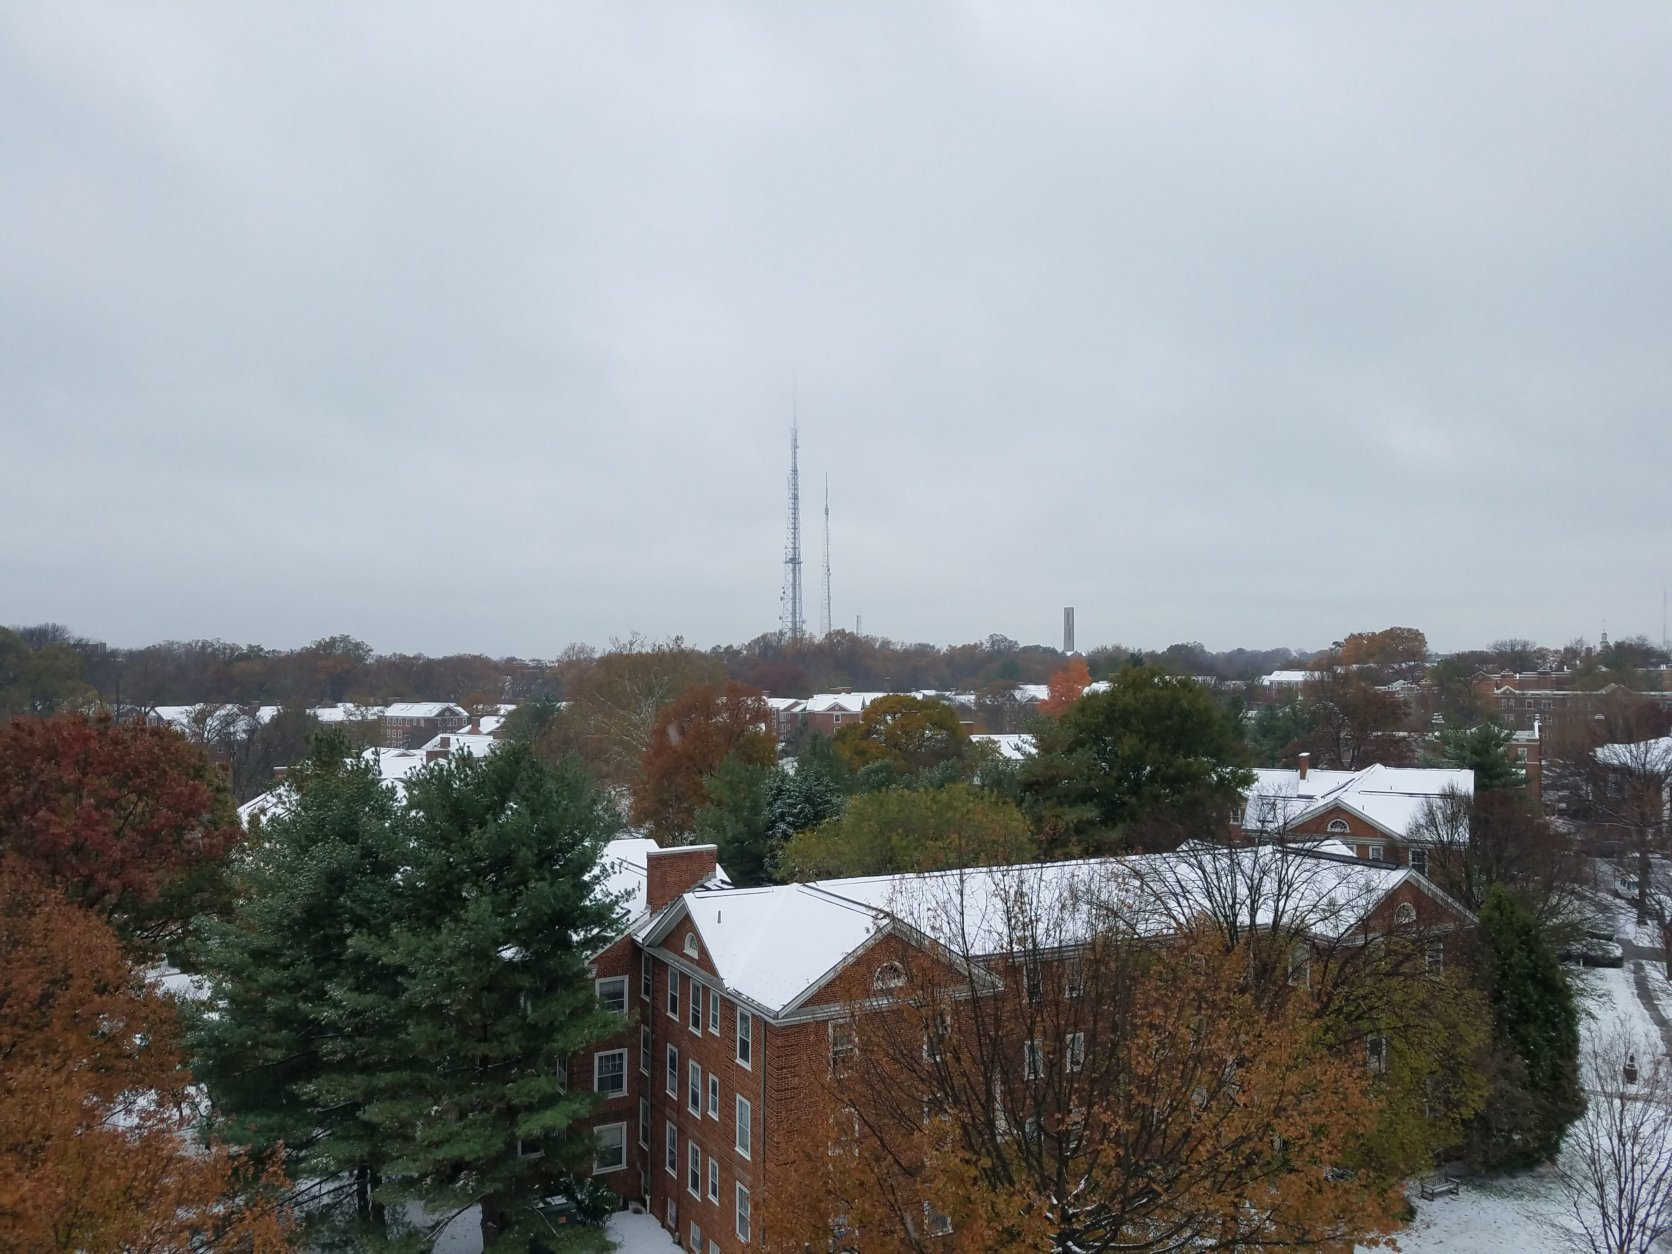 Northwest D.C. as soon from the roof of the Glass Enclosed Nerve Center. (WTOP/Will Vitka)